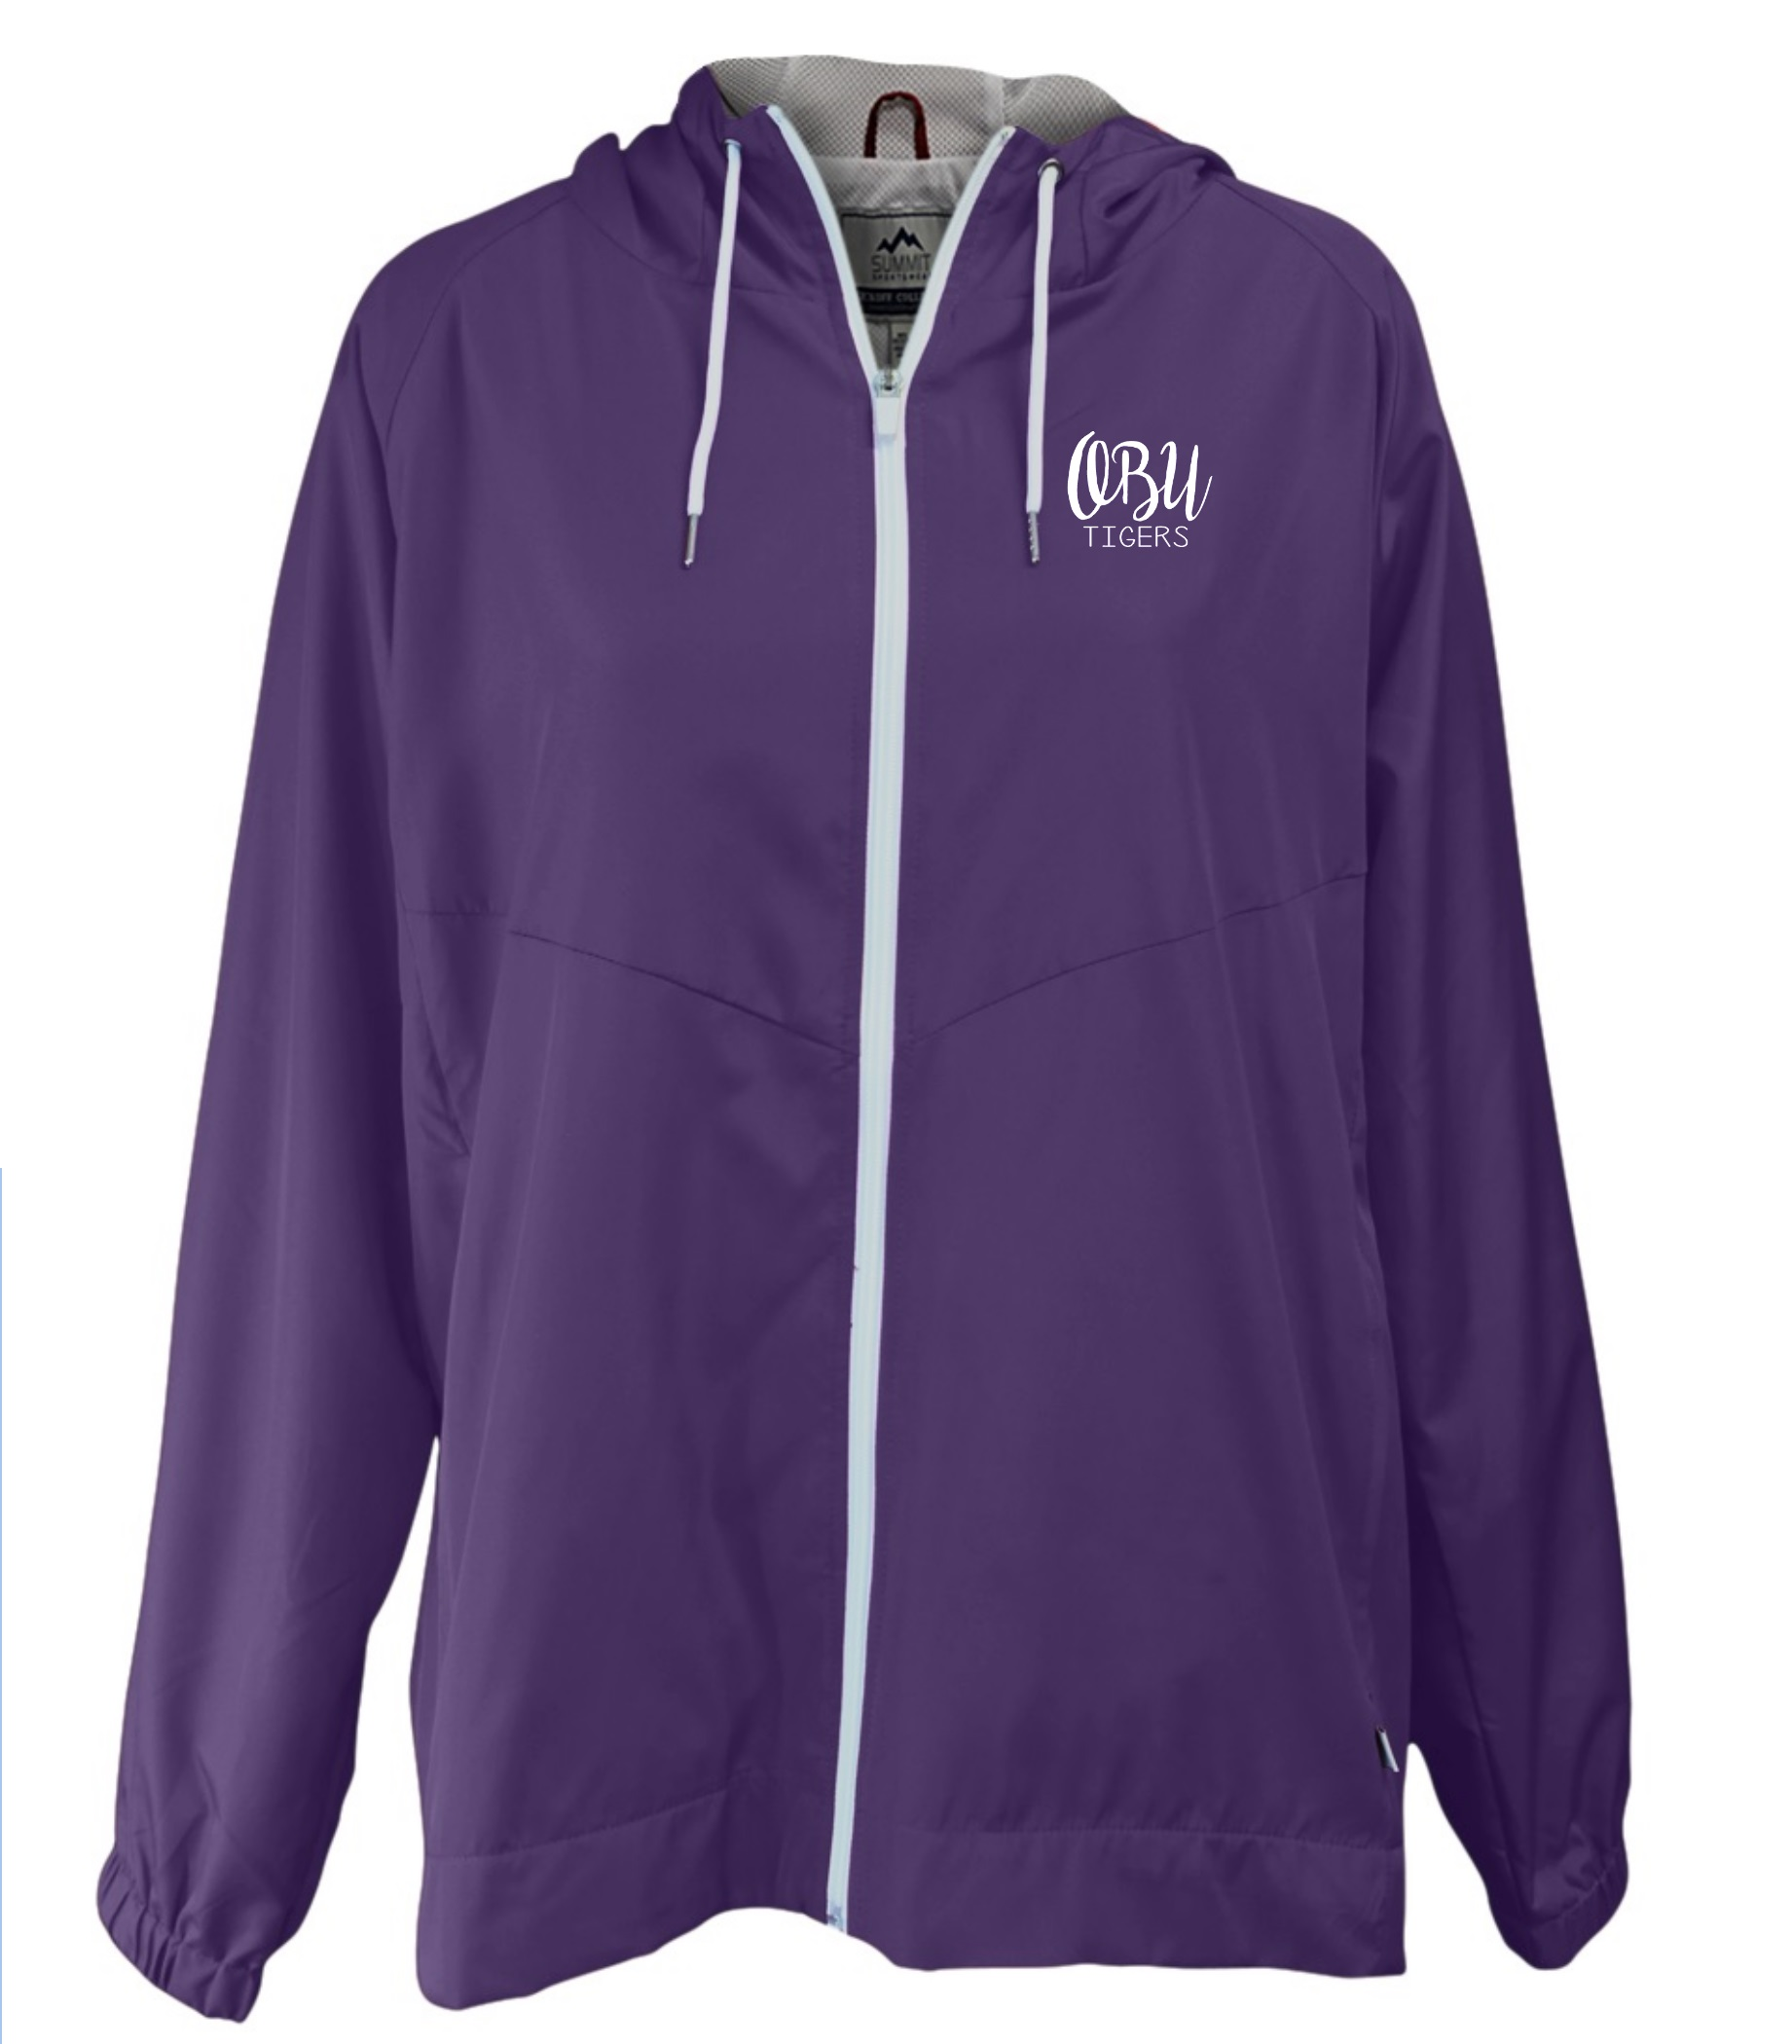 OBU TIGERS HOODED RAIN JACKET